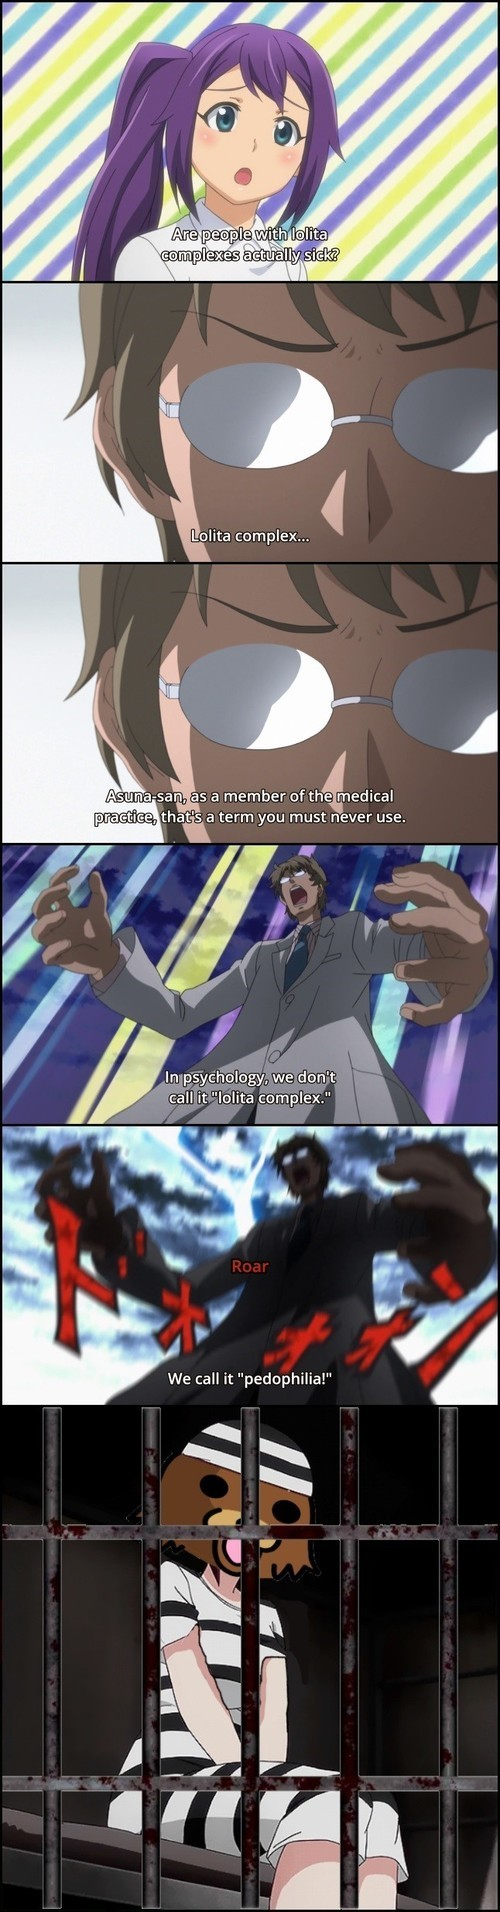 Downvote all comments. Anime:  Comical Psychosomatic Medicine